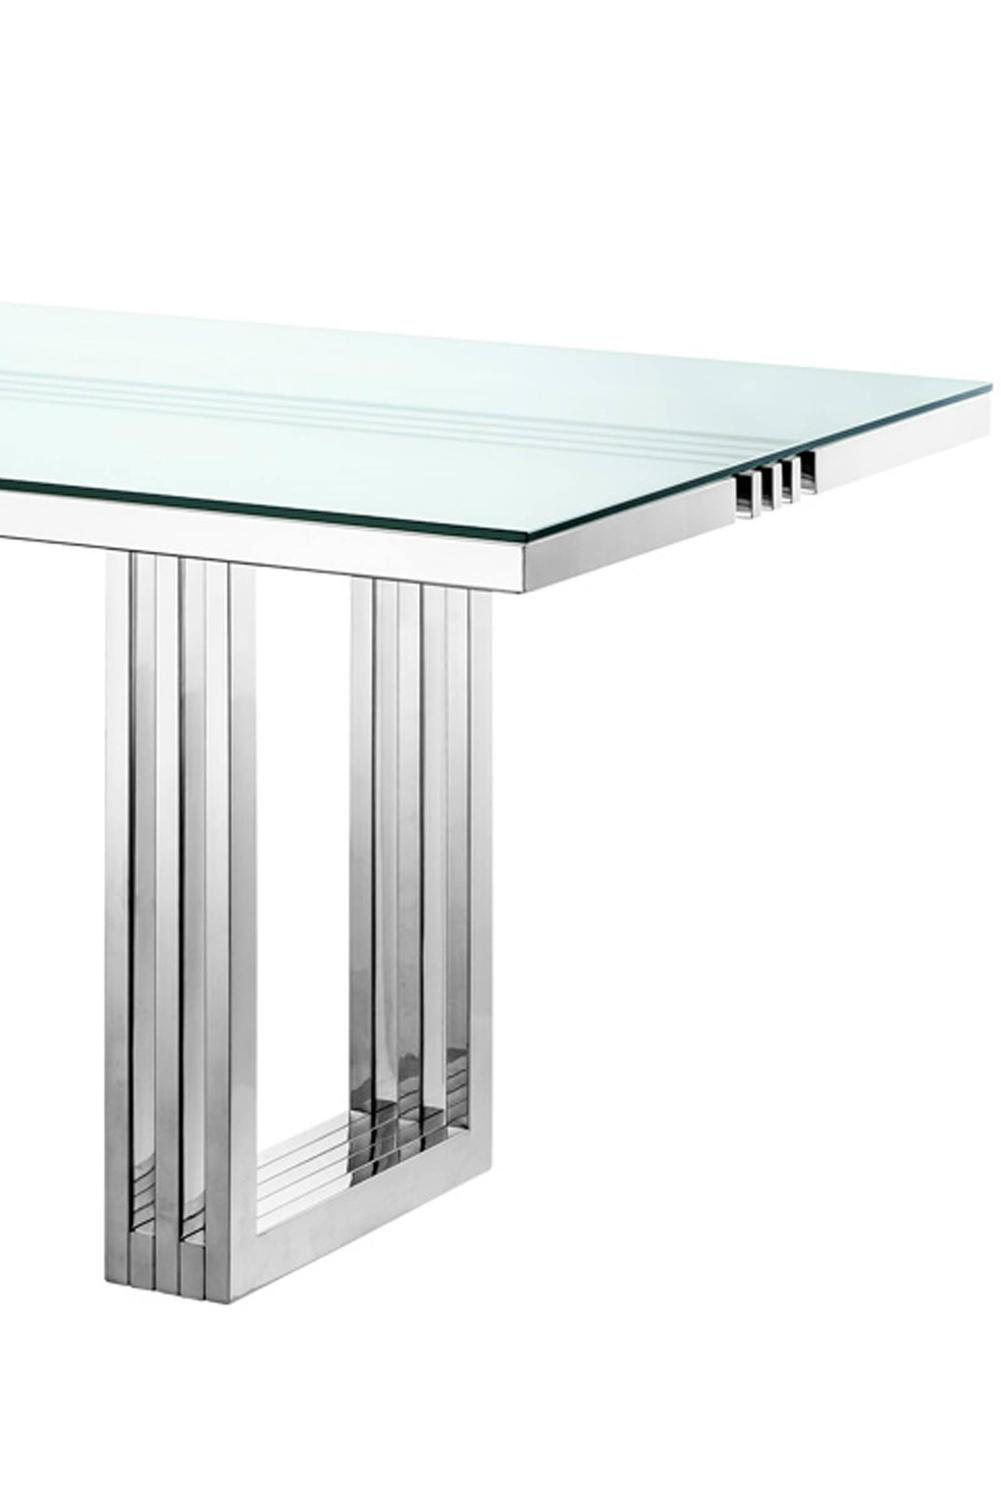 Stainless Steel Dining Table With Glass Top Contemporary  : Sanstitre5copiez from www.amlibgroup.com size 1001 x 1500 jpeg 36kB